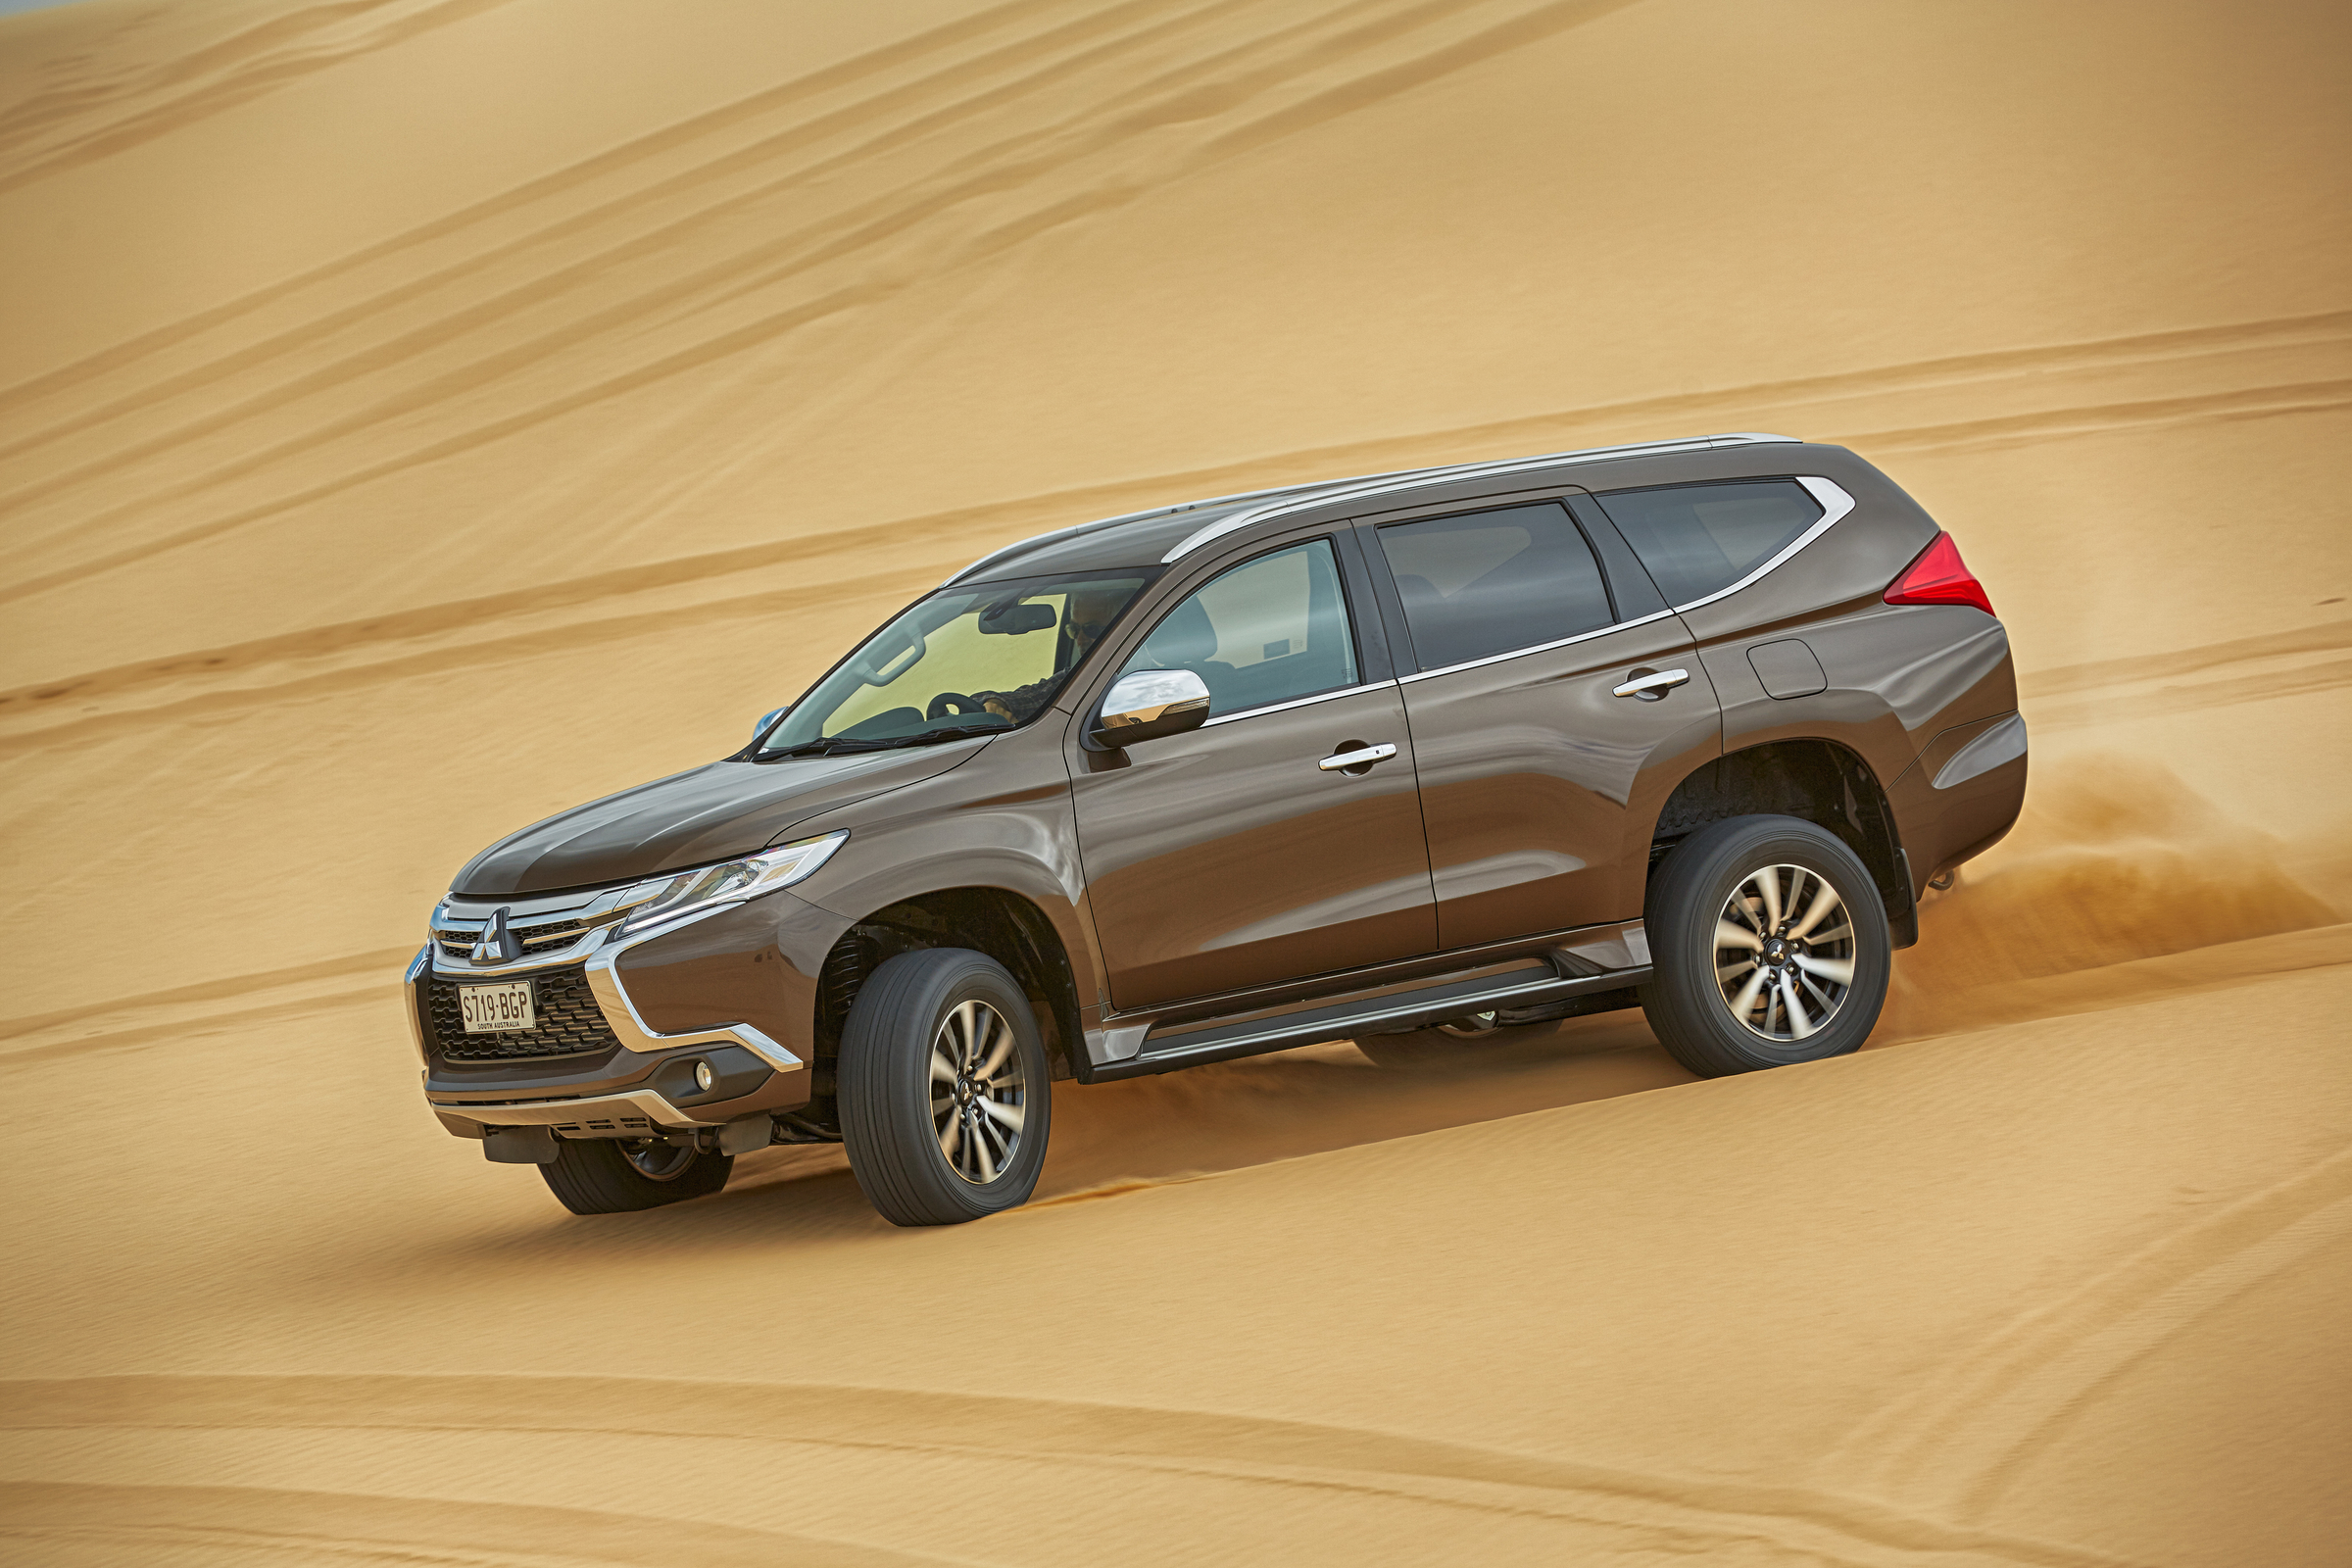 2016 Mitsubishi Pajero Sport Off Road Performance (Photo 12 of 23)